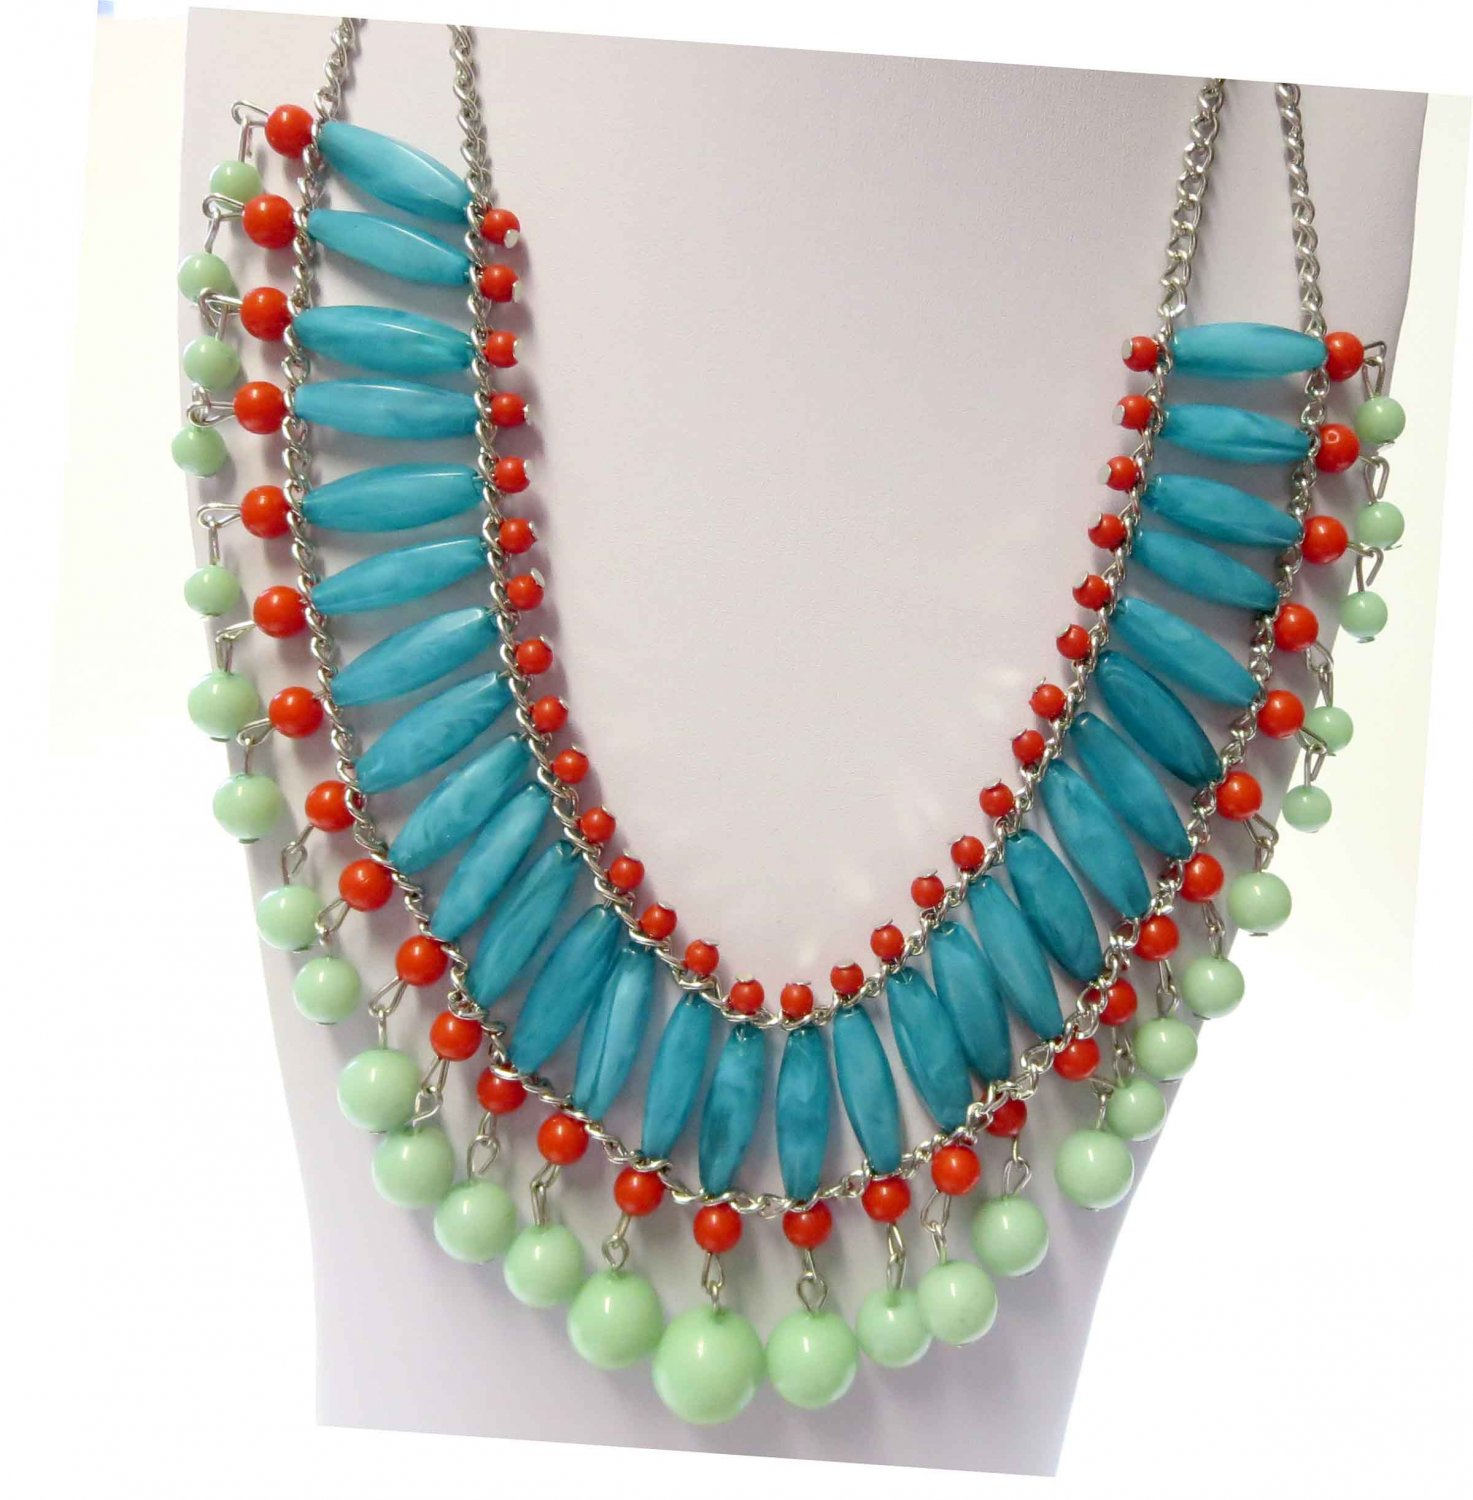 Fashion statement necklace turquoise red